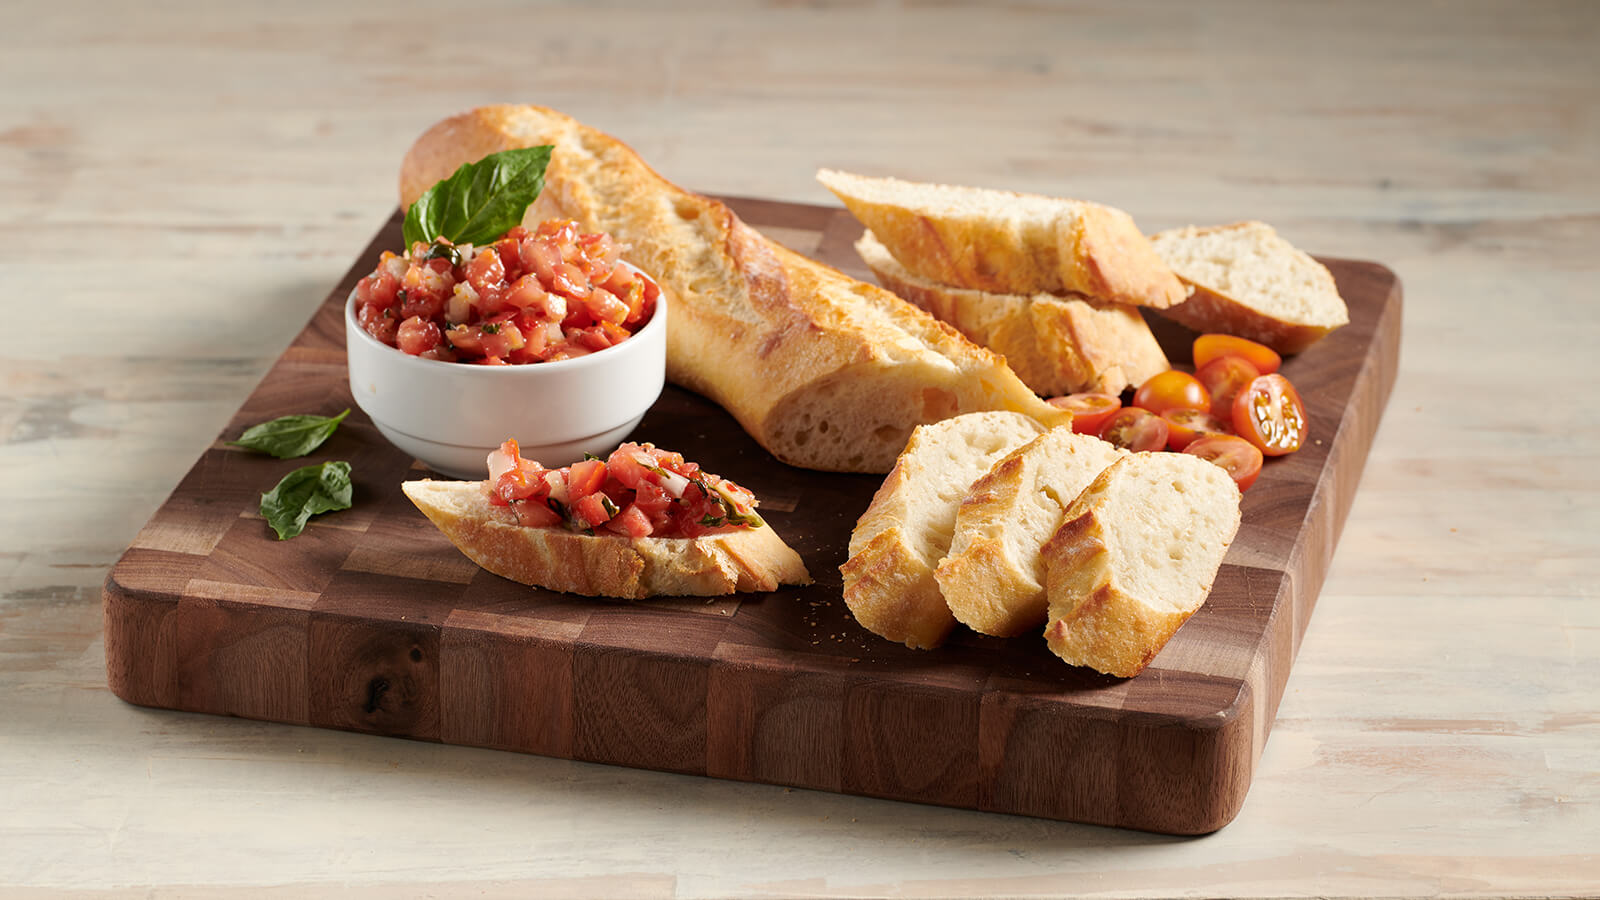 Bruschetta and Artisan Baguette